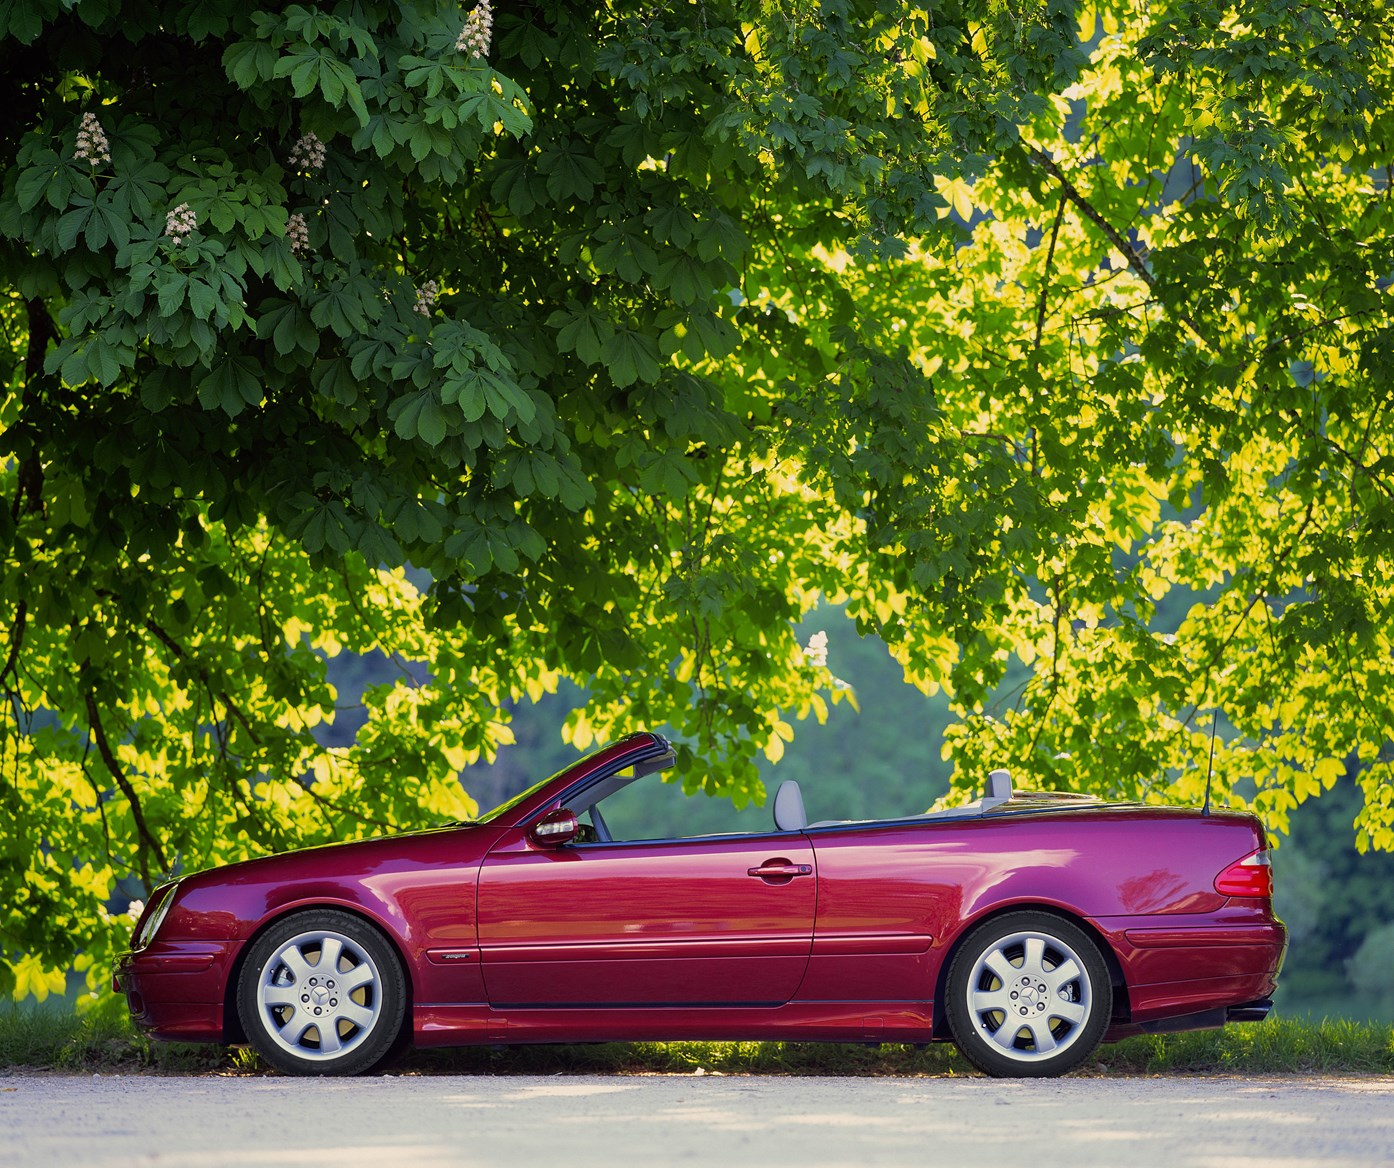 Used Mercedes-Benz CLK Cabriolet (1998